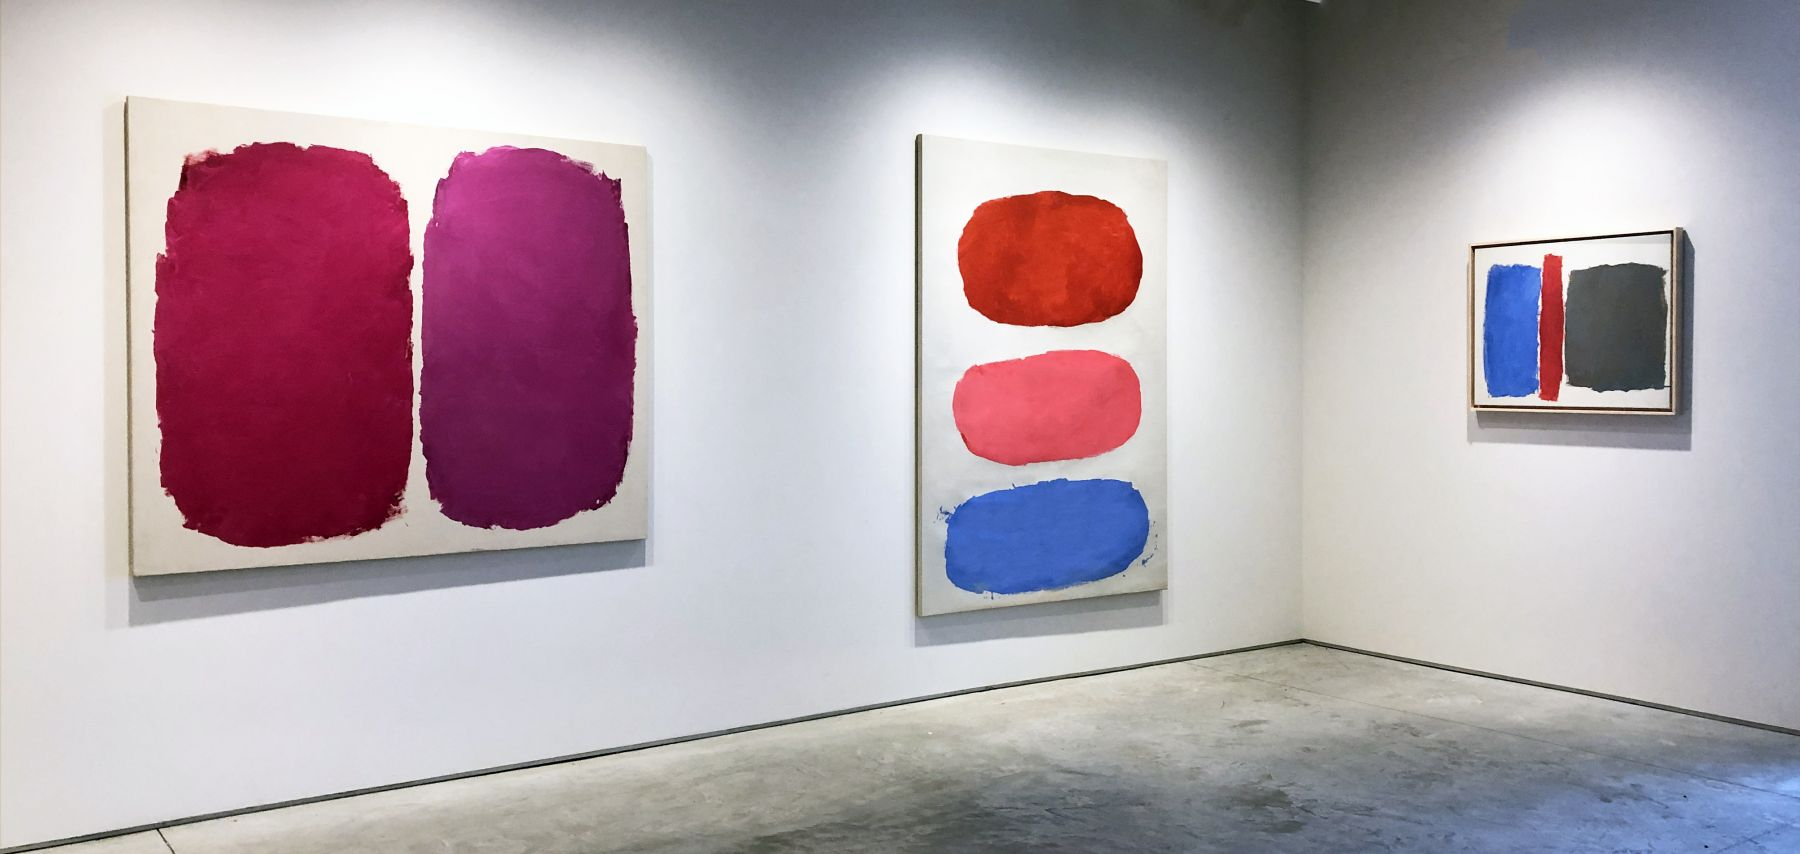 (from left) Untitled, 1960, oil on canvas, 51 x 60 in., Untitled, 1959, oil on canvas, 71 1/4 x 50 1/4 in., Untitled (#446), 1961, oil on canvas, 25 x 31 in.